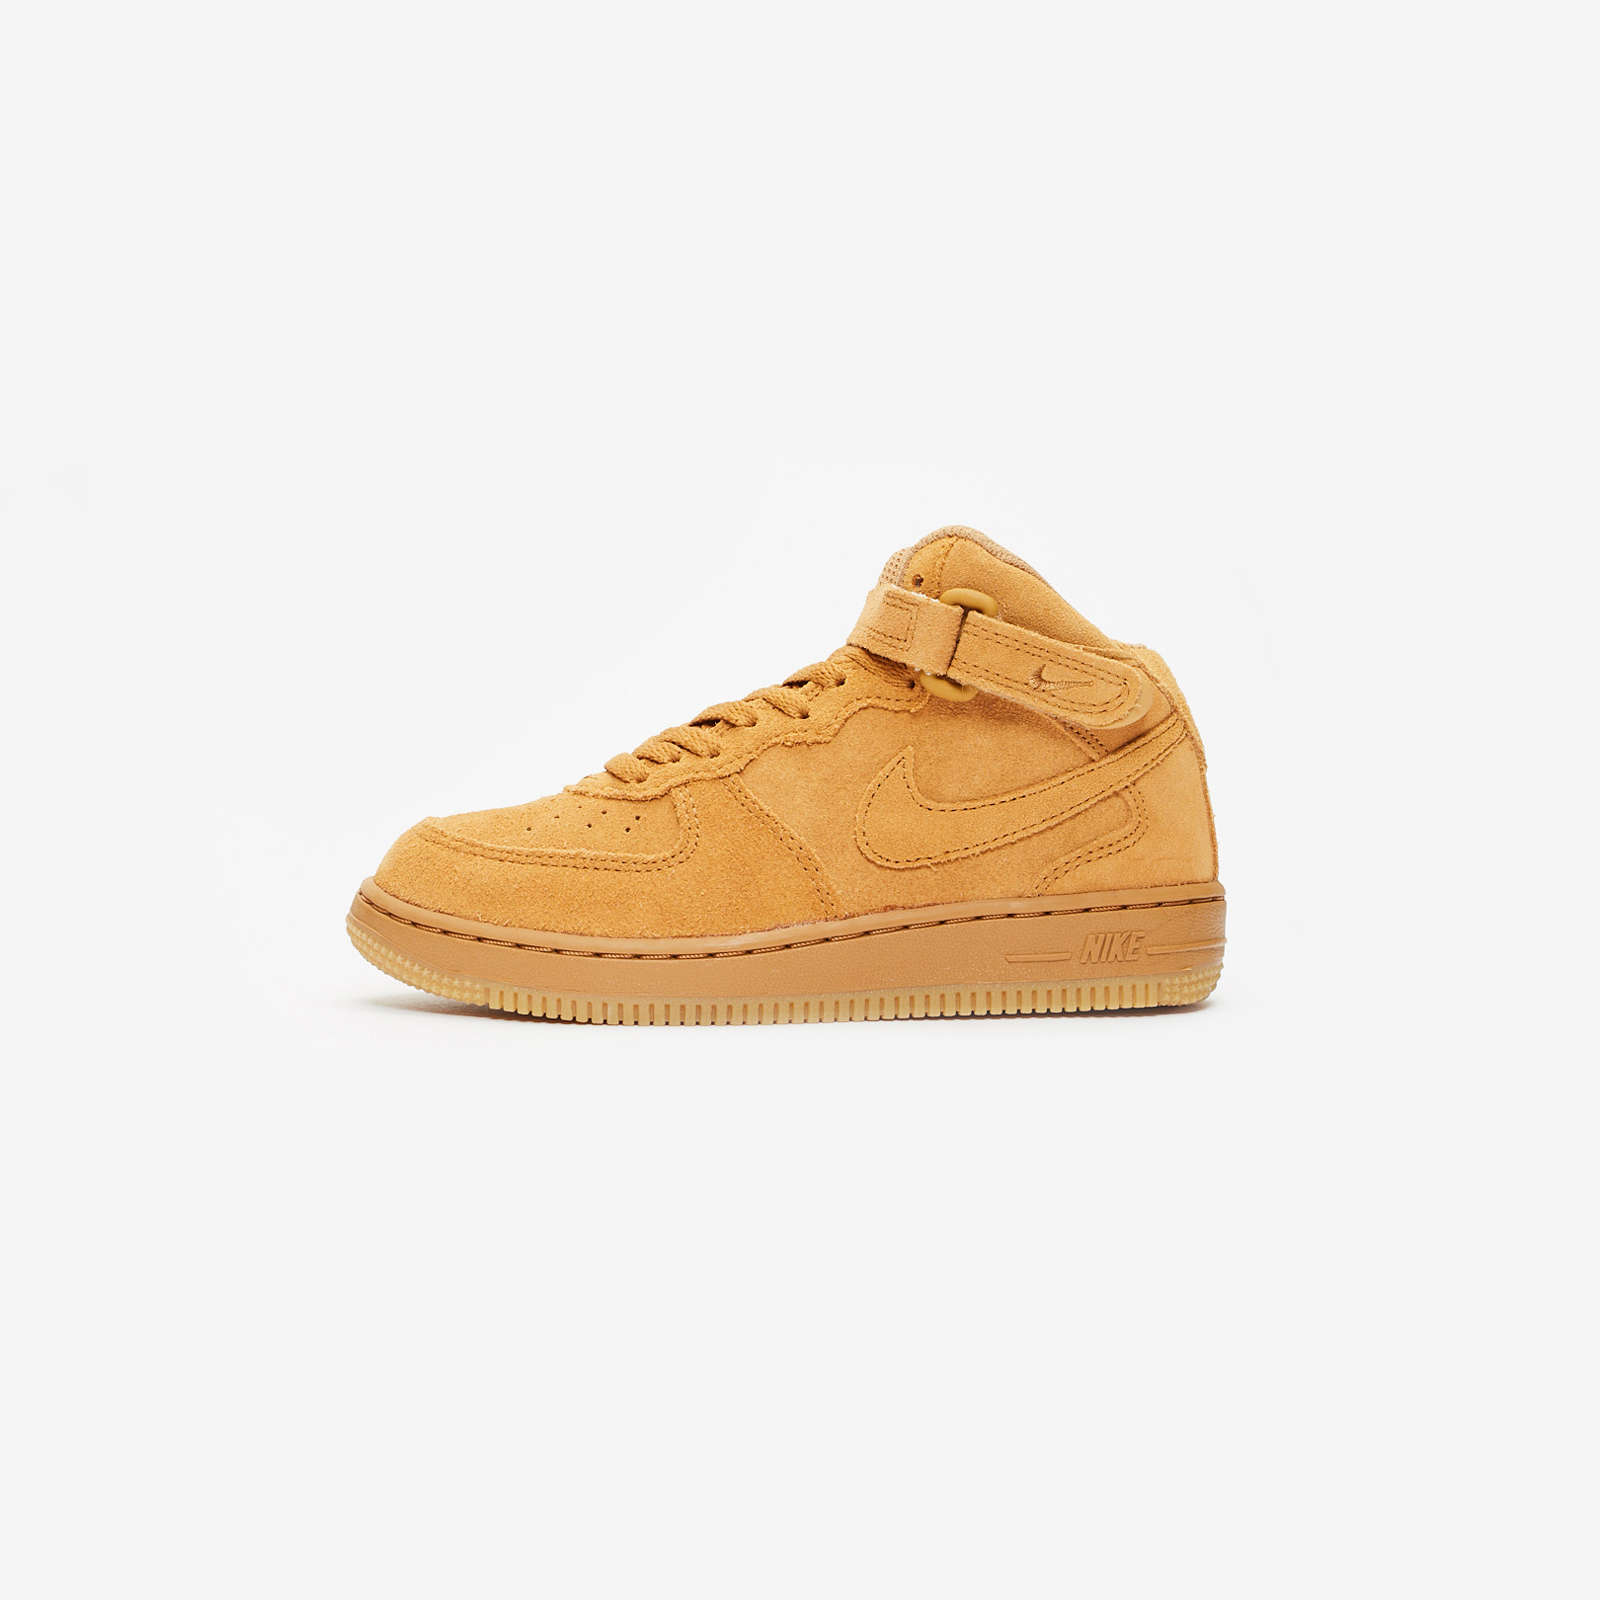 Nike Air Force 1 Mid LV8 (PS) - 859337-701 - Sneakersnstuff ... 9c18db16c